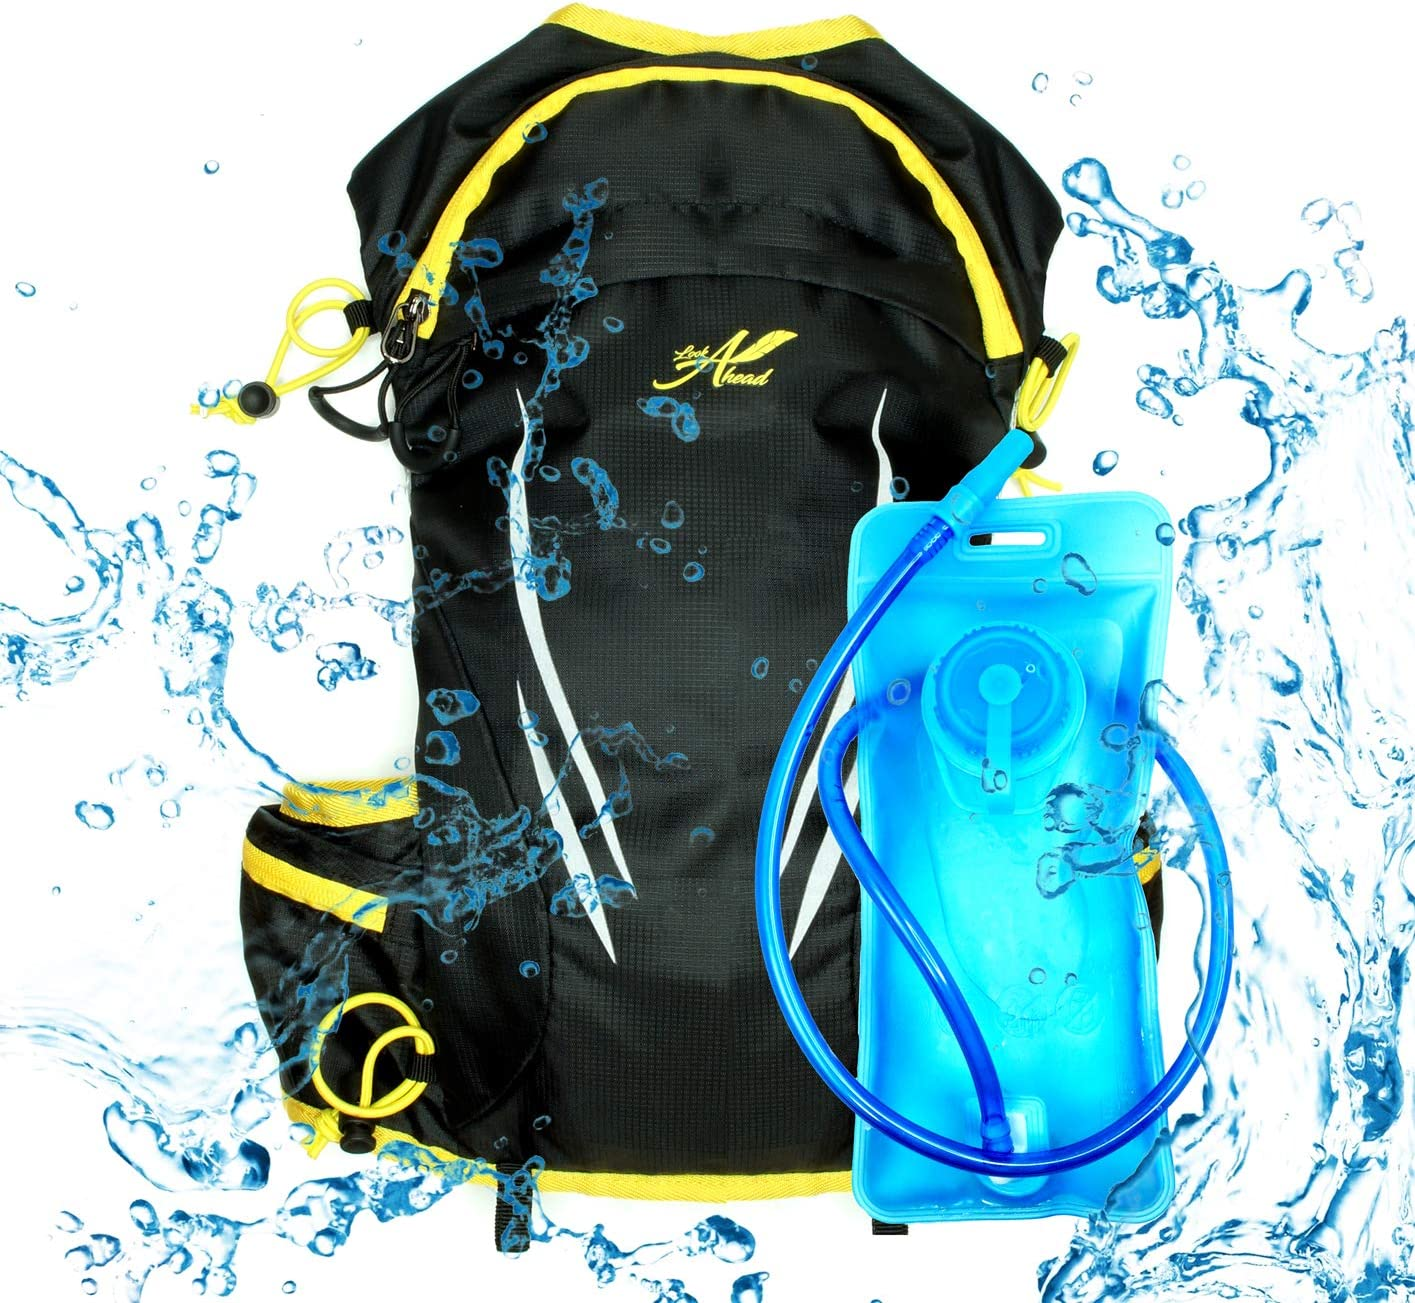 lookahead Hydration Backpack Pack with 1,5L BPA Free Bladder Women Waterproof Hiking Backpack for Men GIFT Bandana Running,Cycling,Camping,Trekking,Outdoors